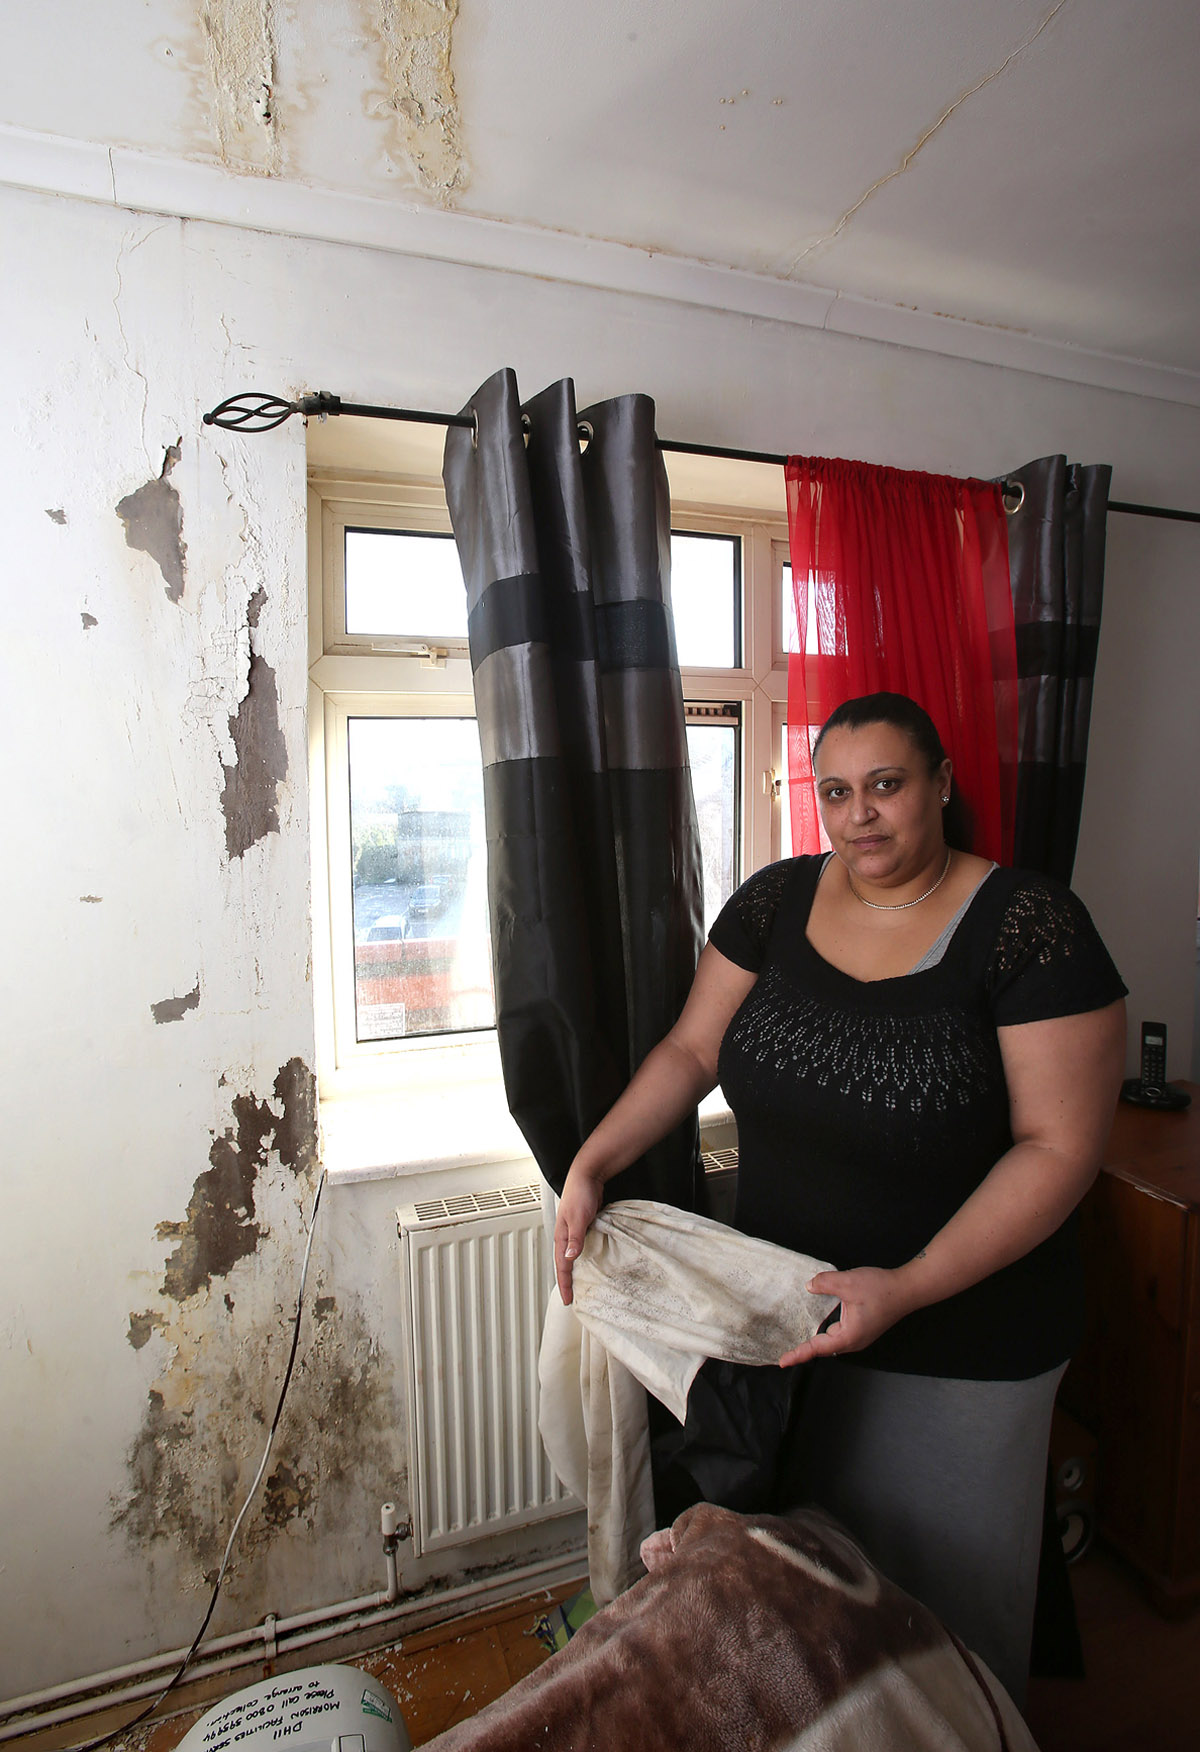 Amina Abou-El-Fotouh in her water damaged home.